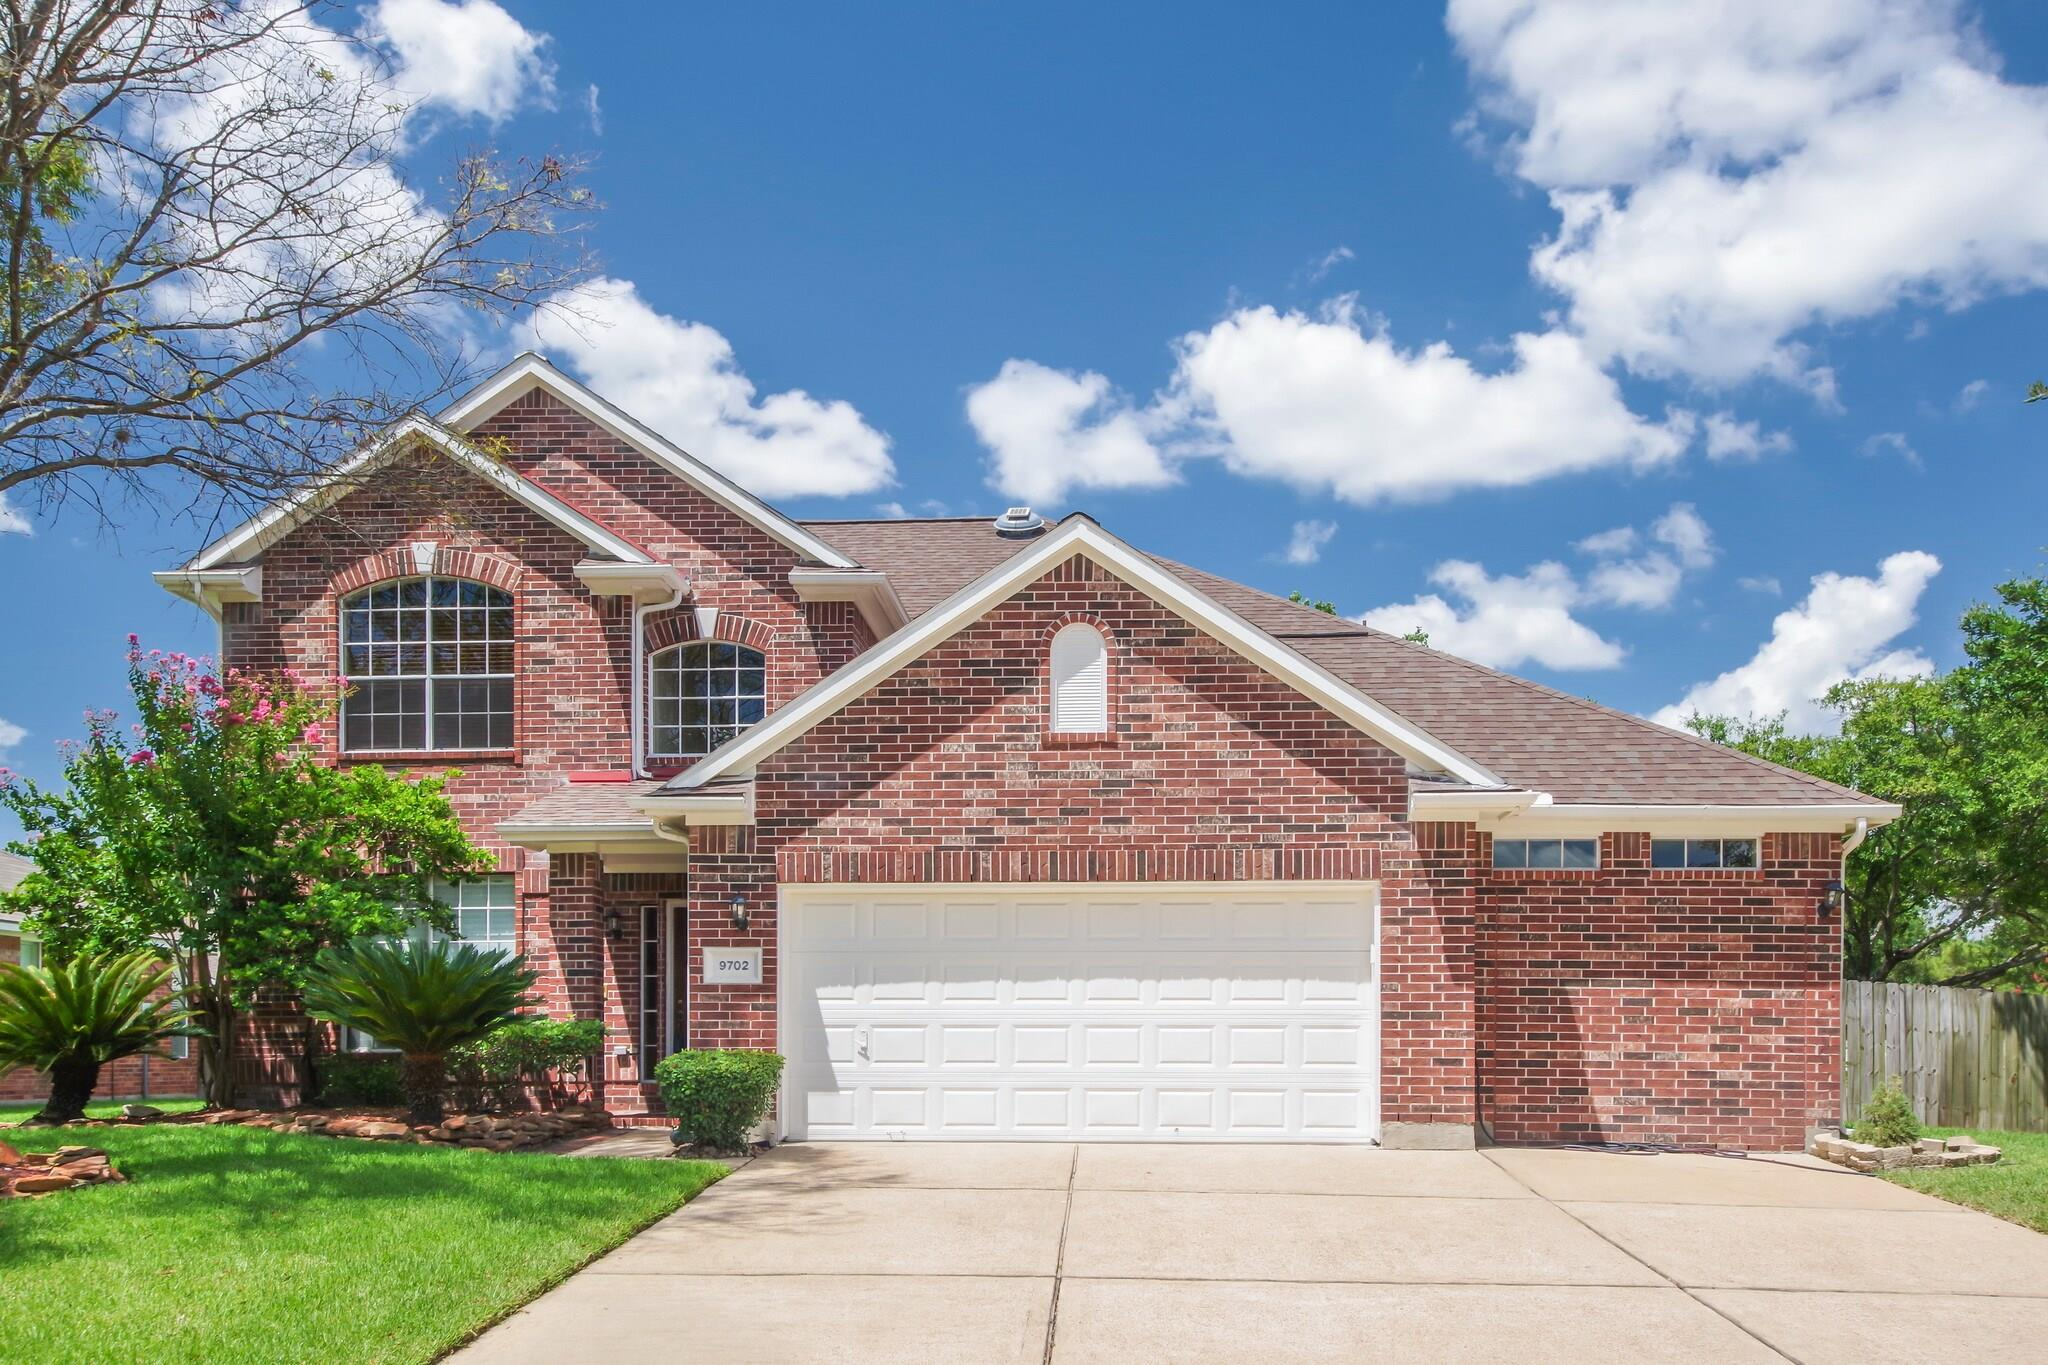 9702 Big Willow Lane Property Photo - Houston, TX real estate listing